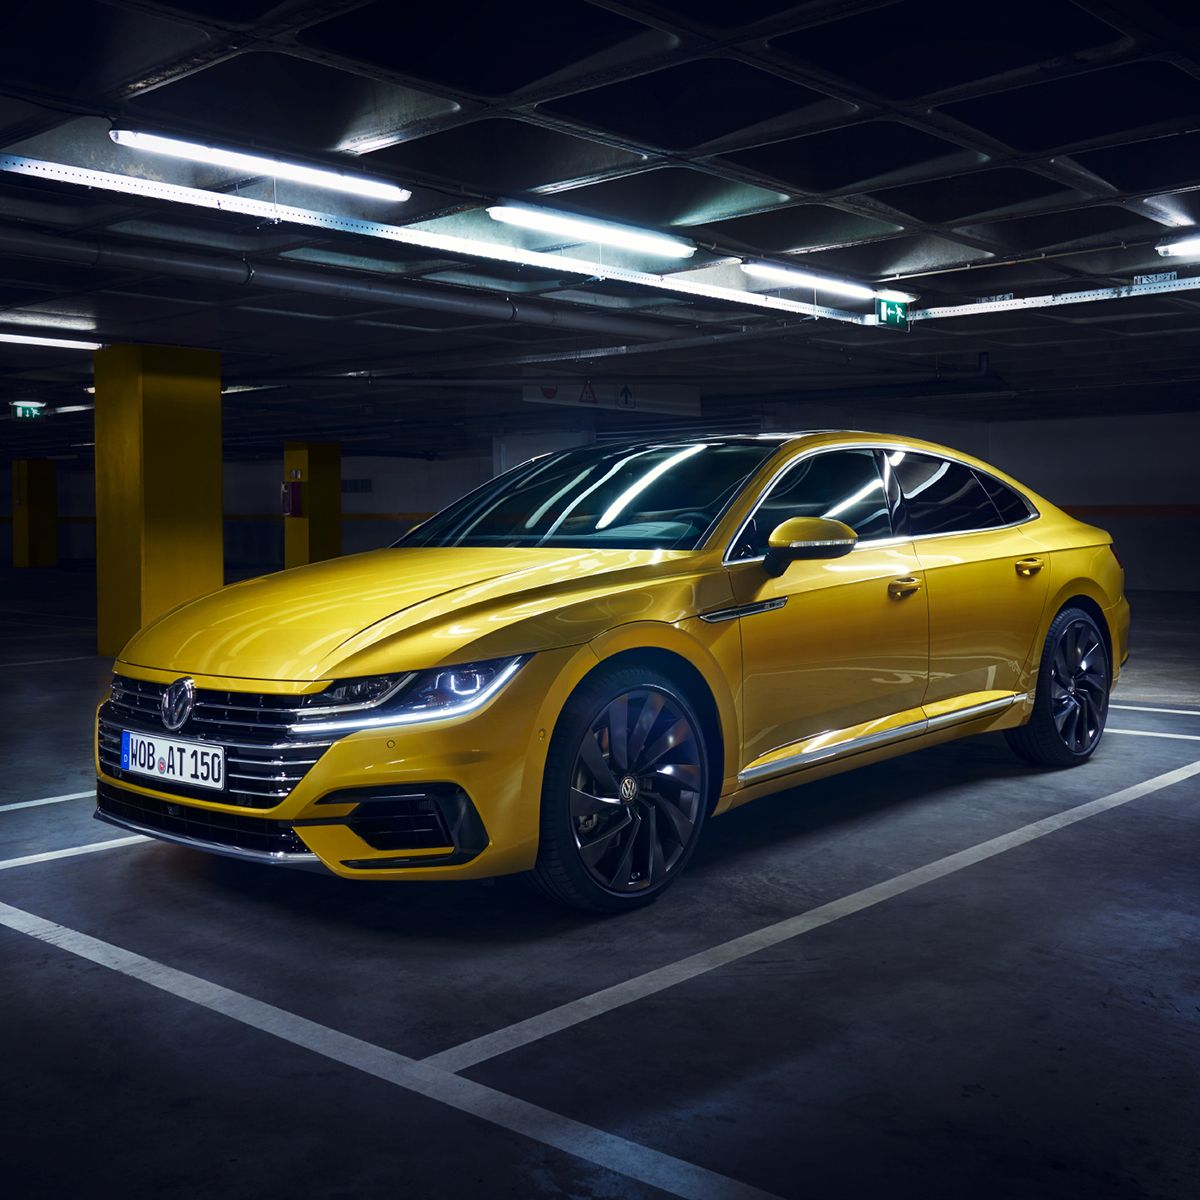 The Striking Kurkuma Yellow Paint Of The Volkswagen Arteon Lets This Modern Car Stand Out Even More From Th Volkswagen Automotive Photography Volkswagen Models